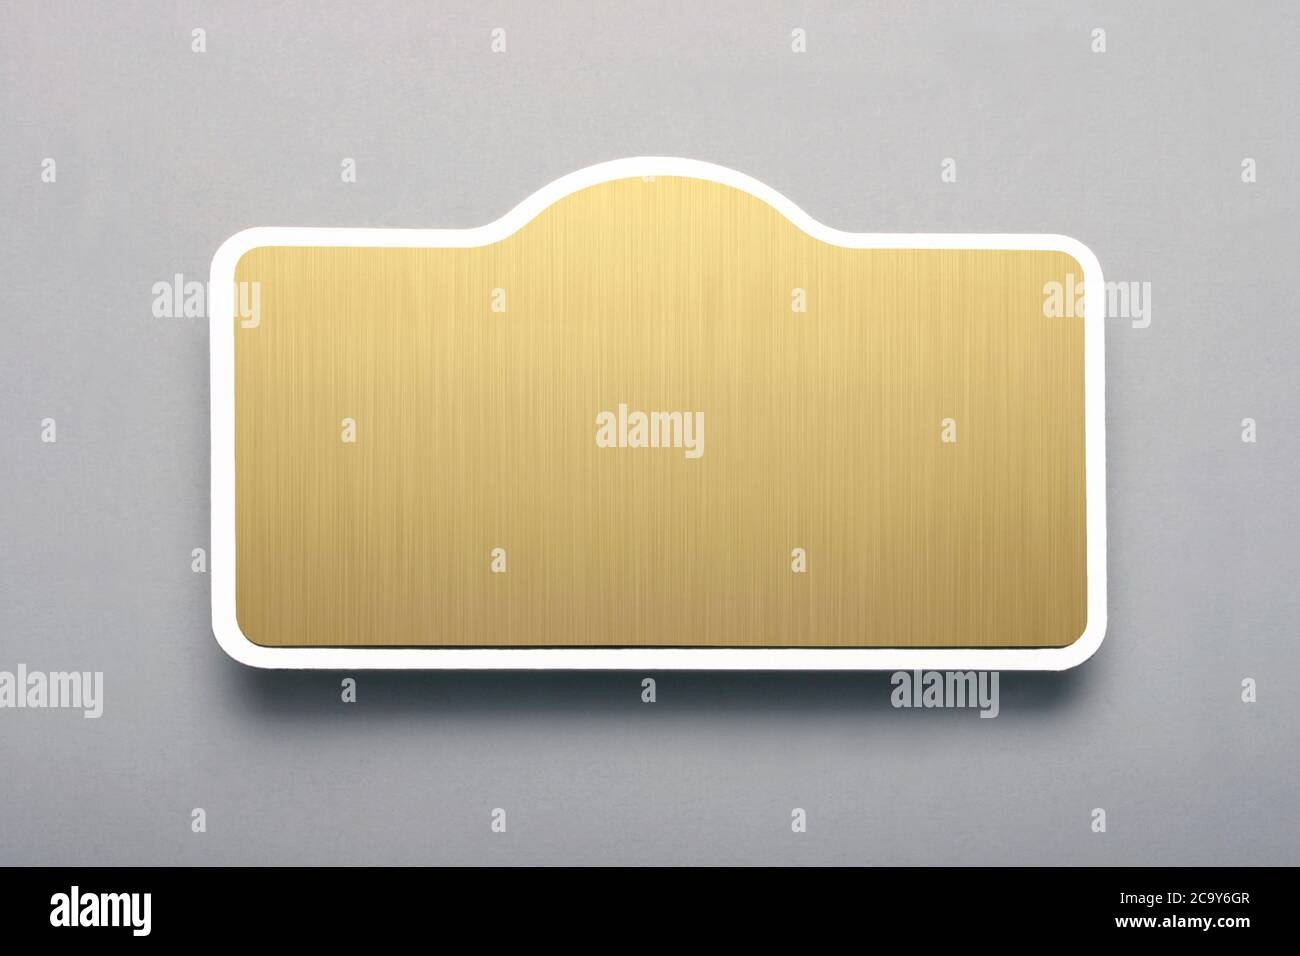 Metal Or Wooden Name Plate For Insertion Into Collar Or Shirt Pocket Metal Or Wooden Name Tag Stock Photo Alamy